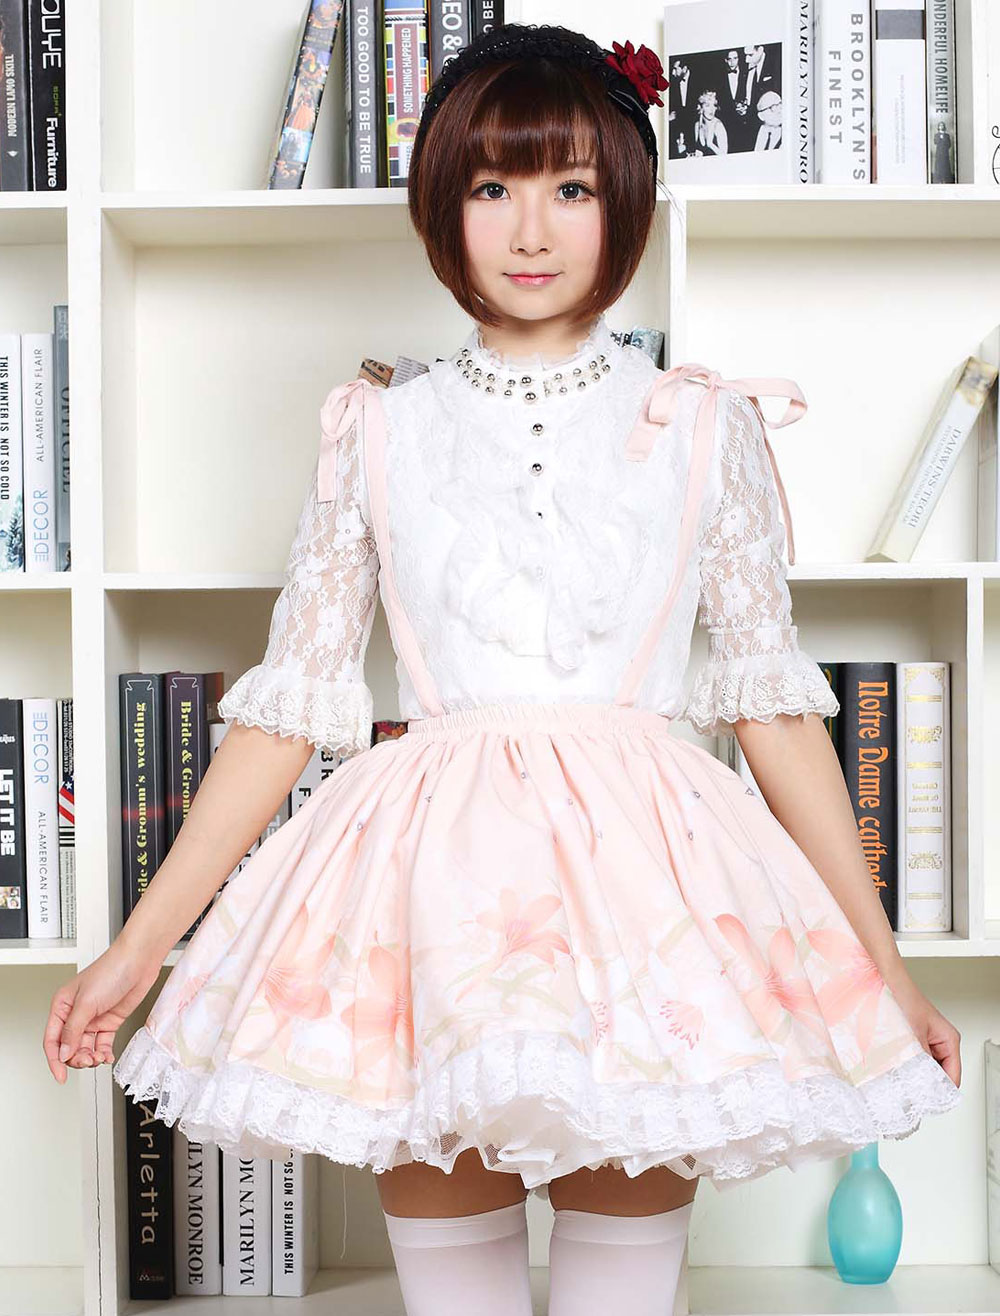 Buy Cute Lolita Dress Sweet Pink Flower Printed Qi Lolita Lace Trim Skirt With Suspender for $35.99 in Milanoo store